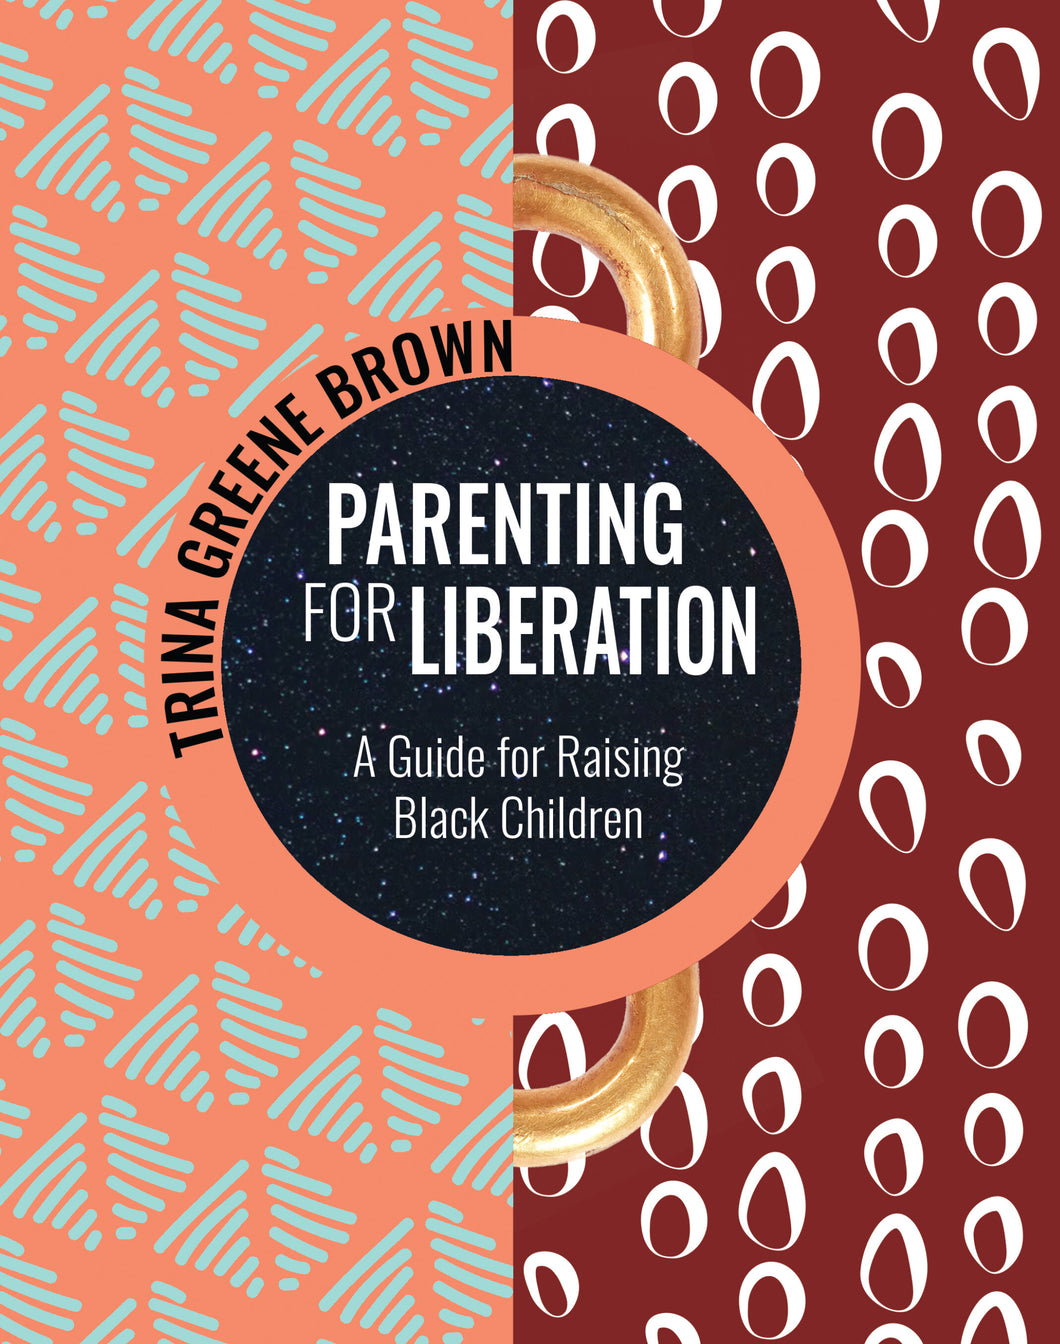 Parenting for Liberation: A Guide for Raising Black Children by Trina Greene Brown